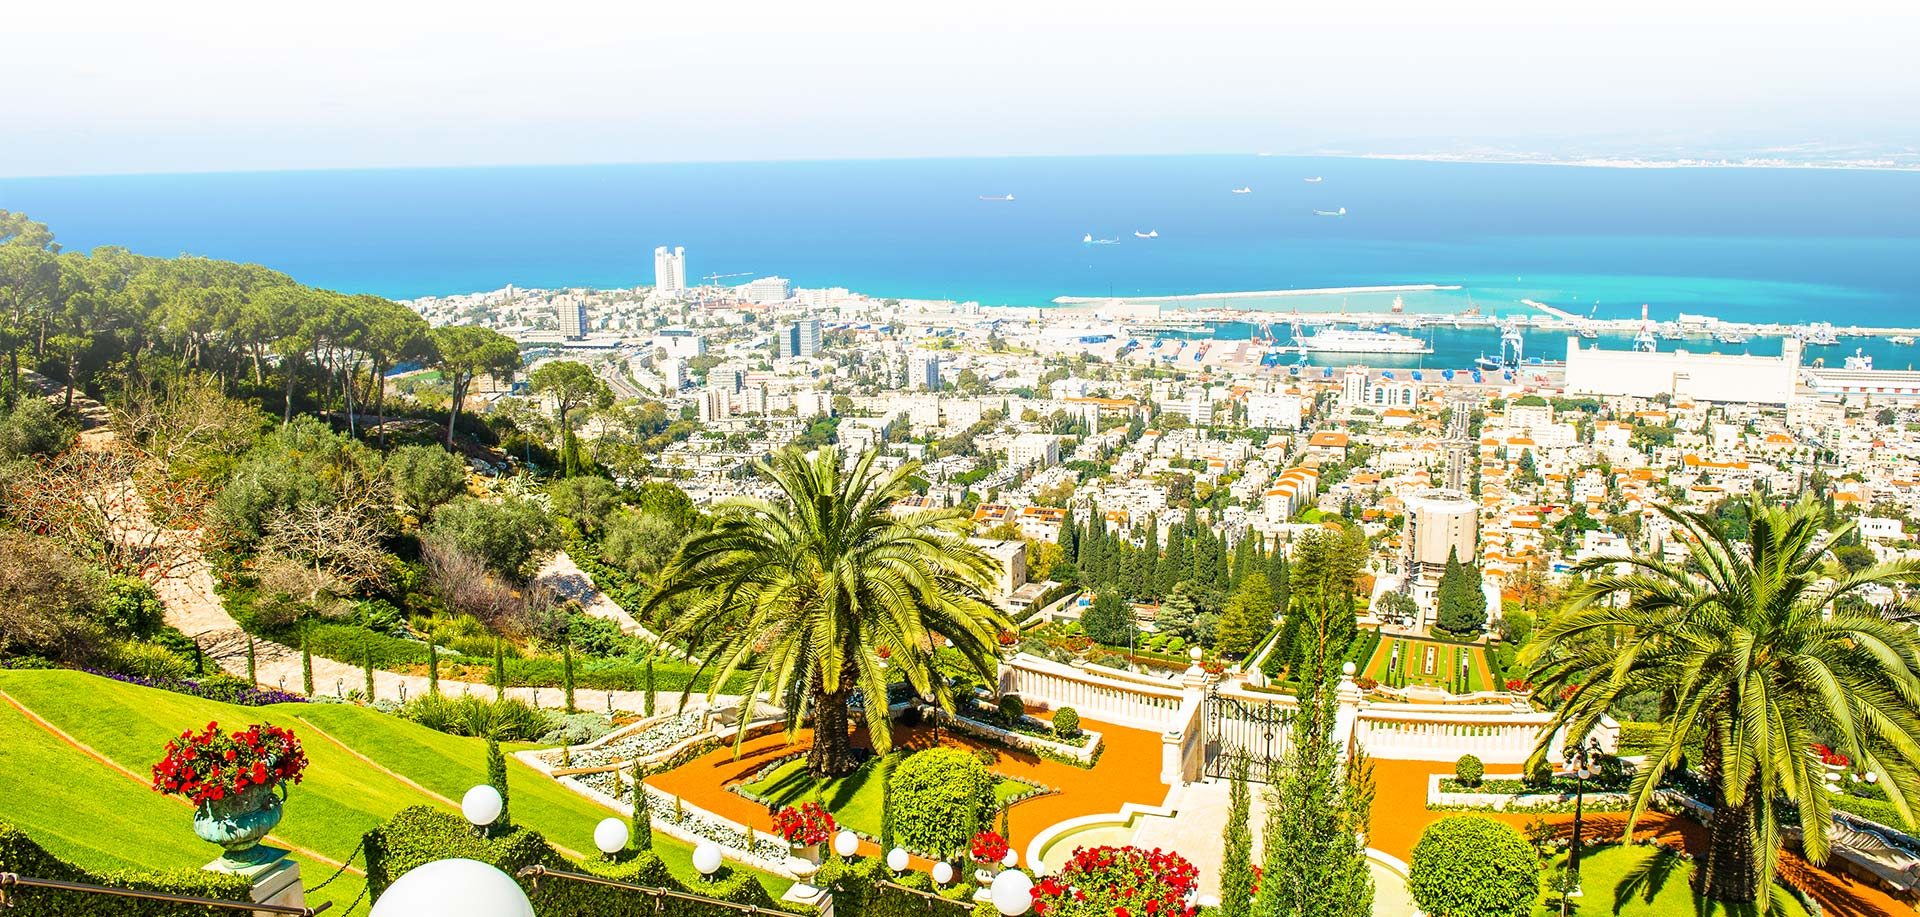 Haifa, ISMBE 2019, mobile health